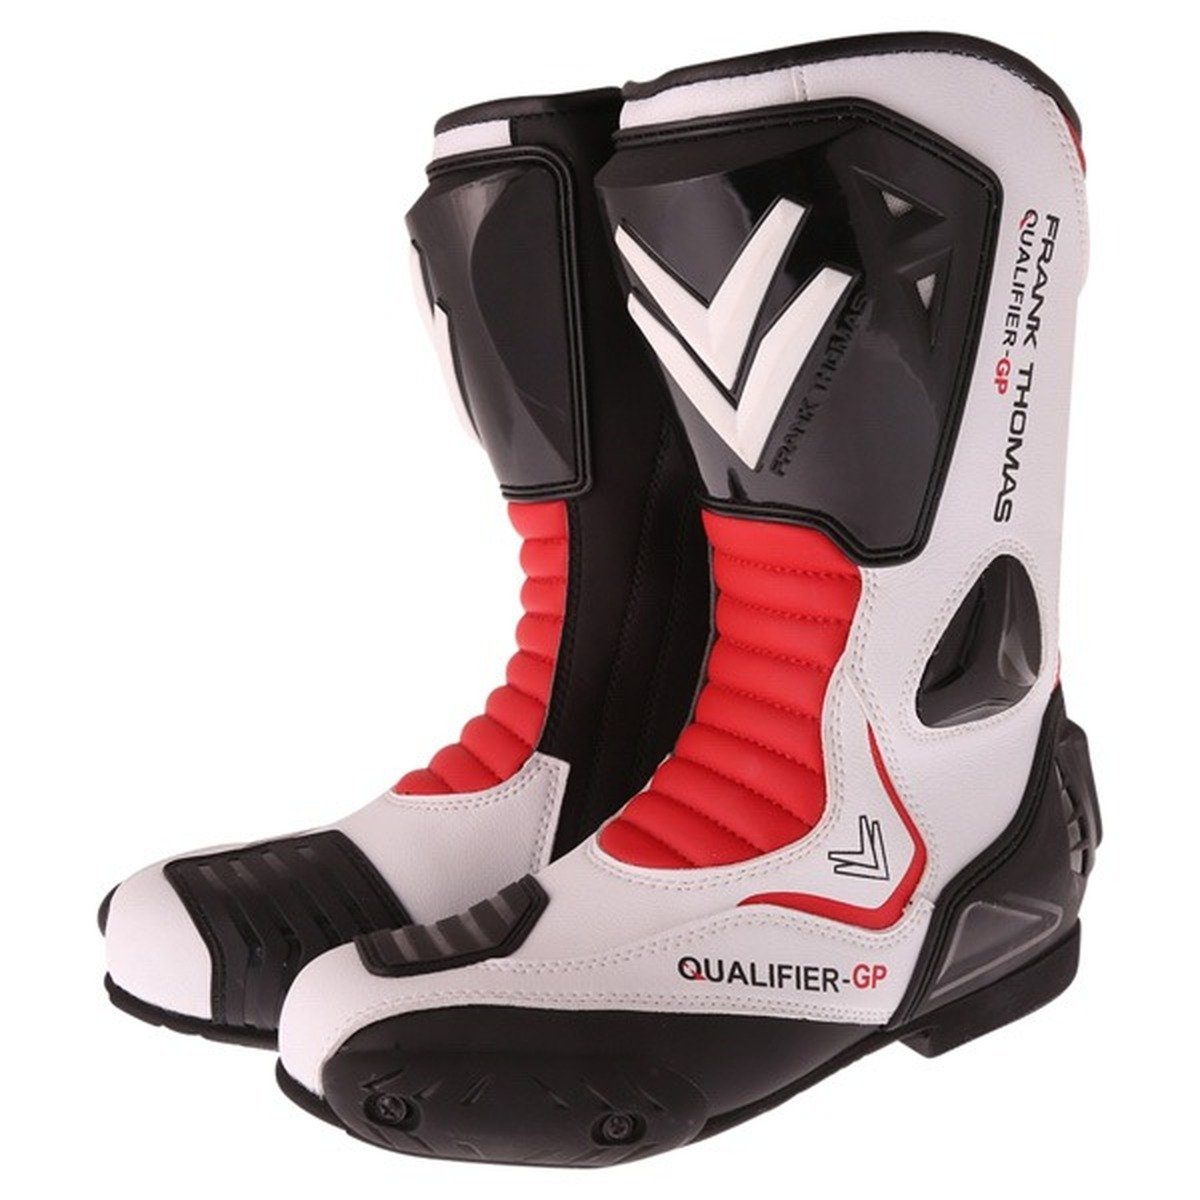 Frank Thomas Qualifier GP Boots in Red